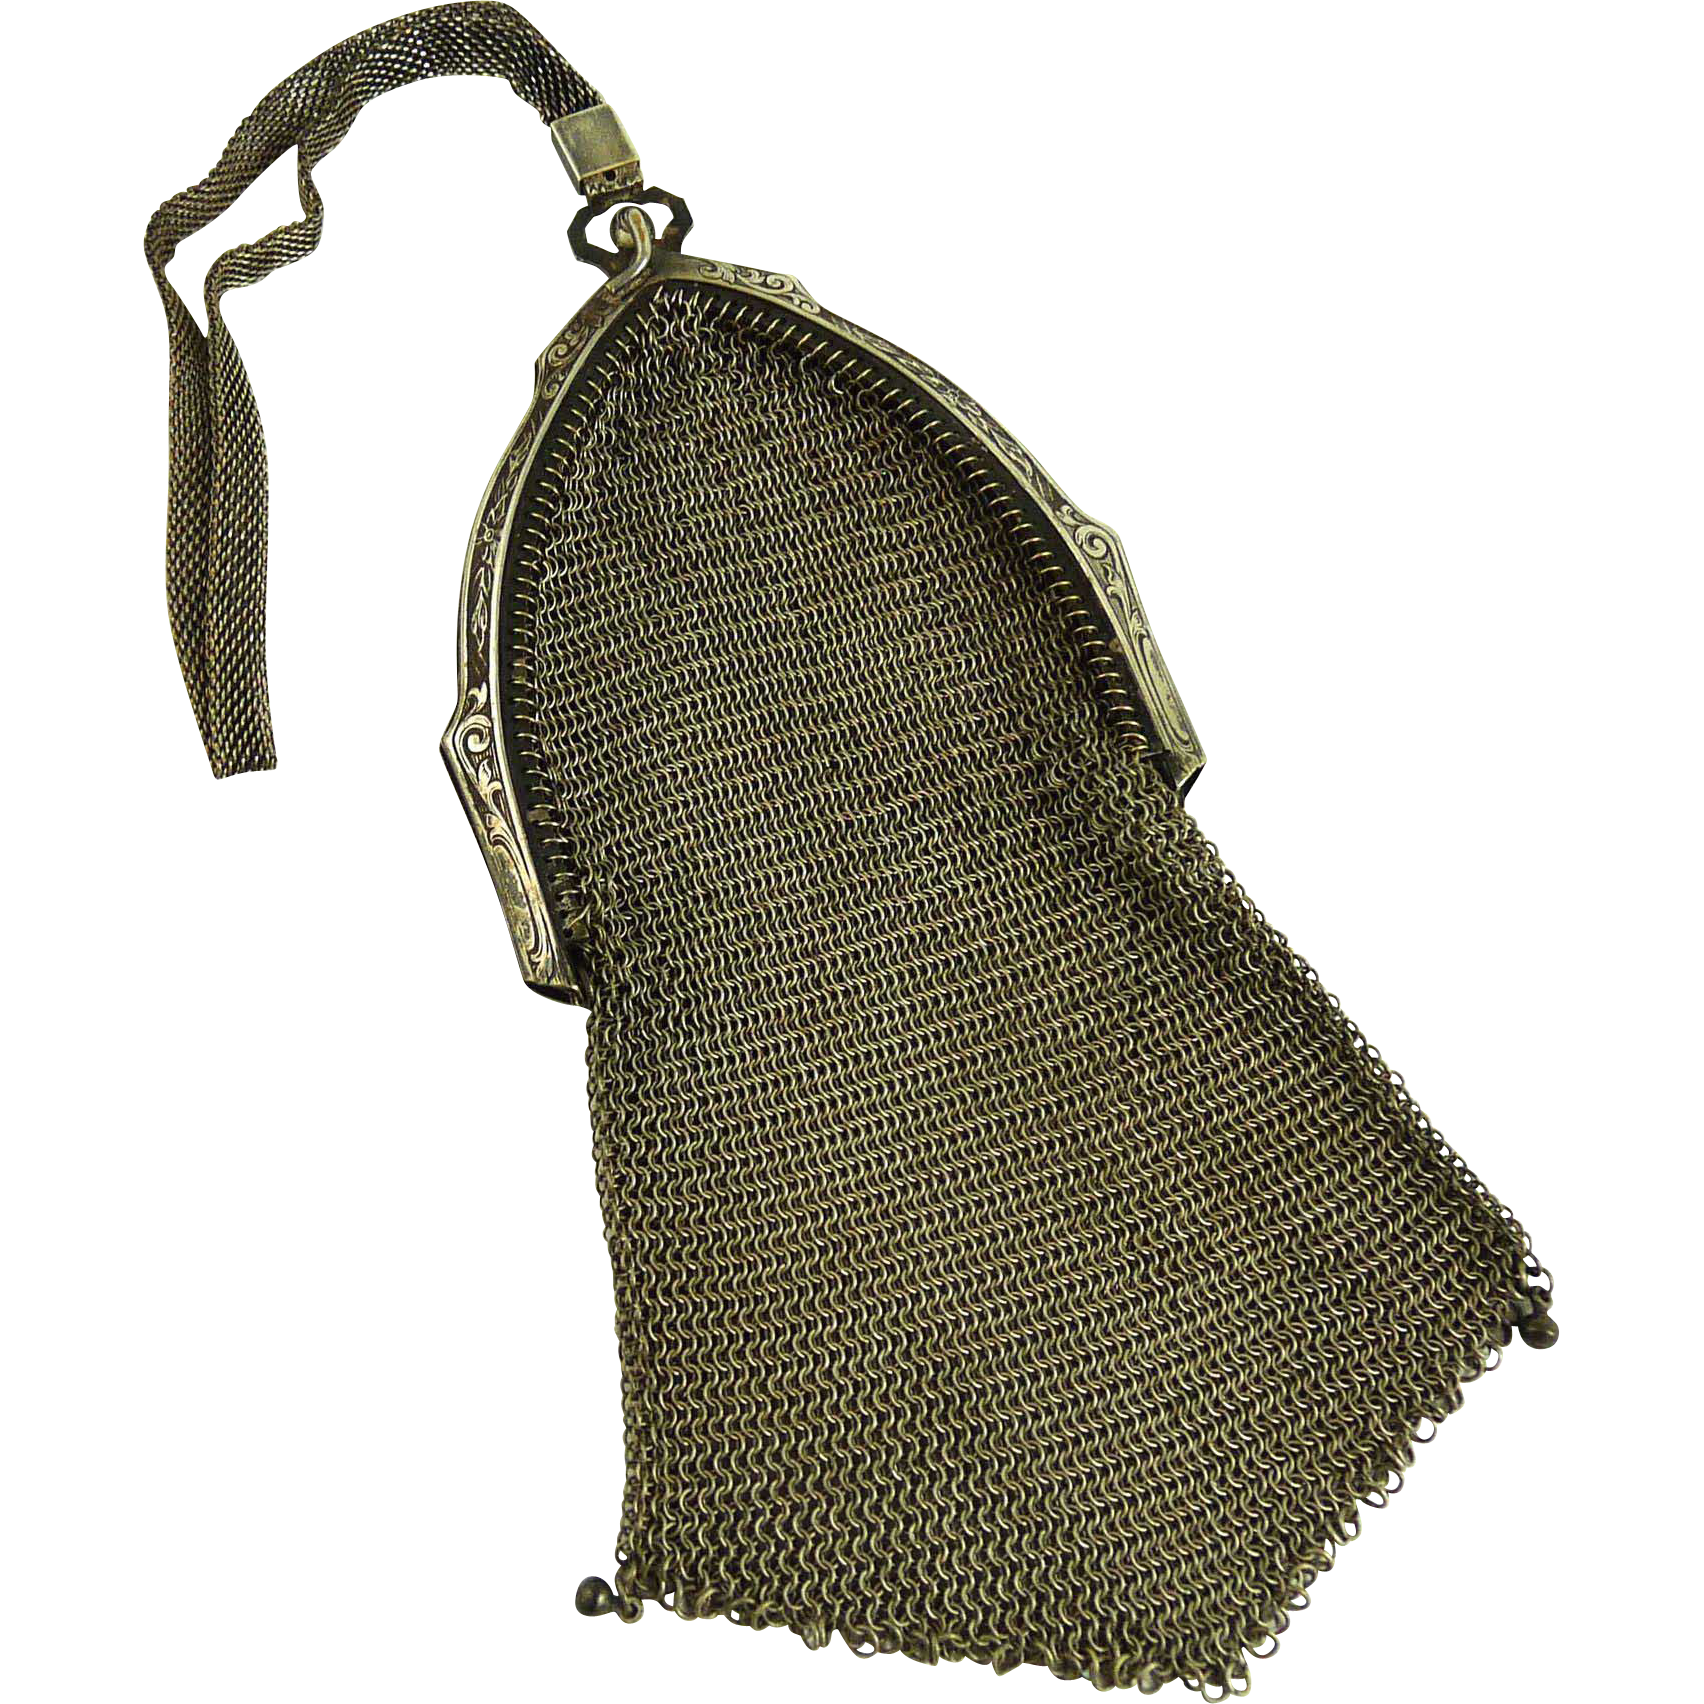 Antique Edwardian Chain Mesh Bag